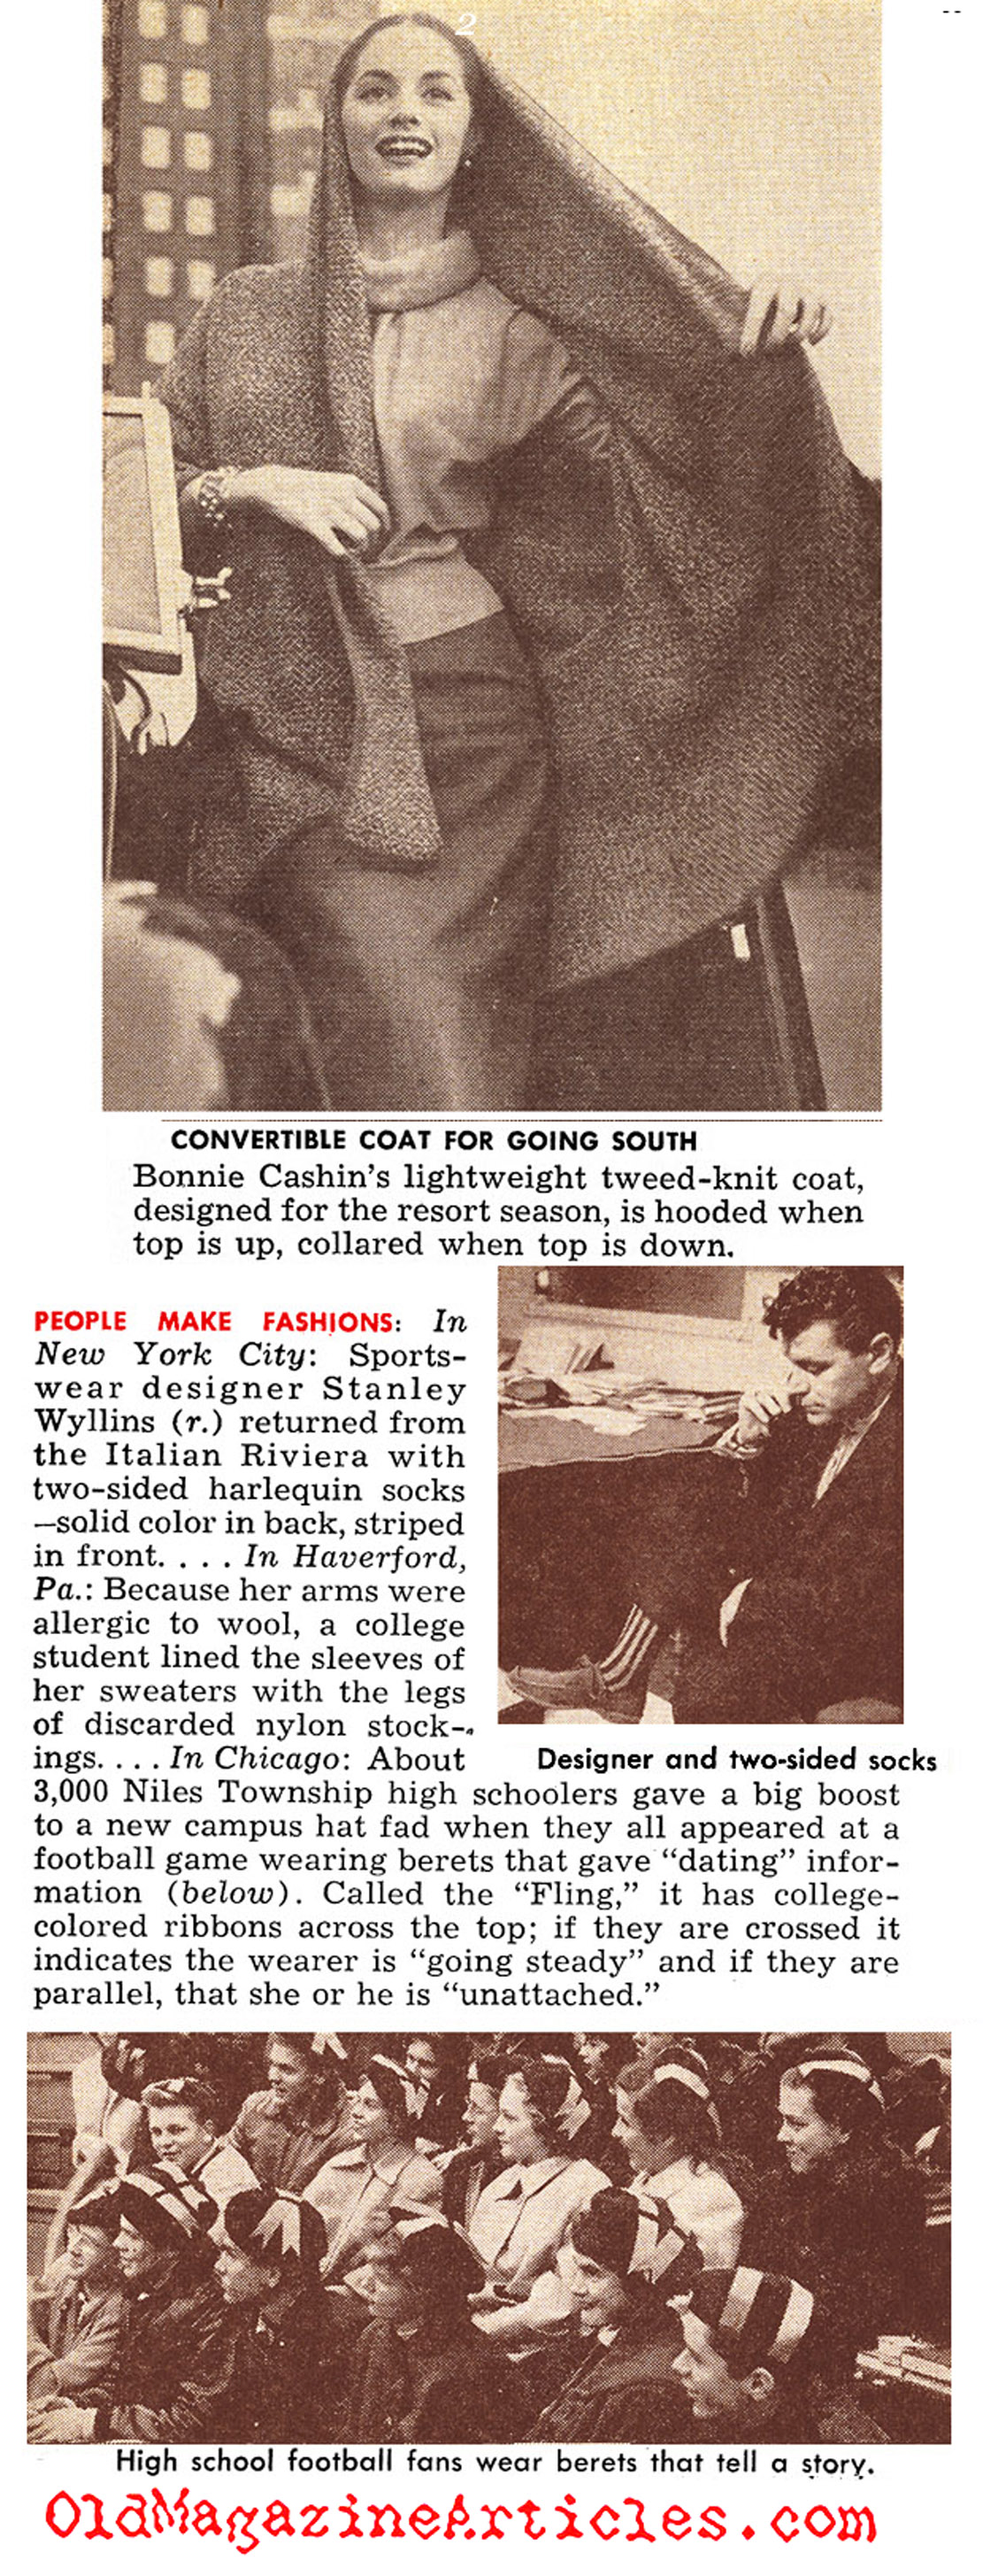 Swank in the Cold (Quick Magazine, 1952)